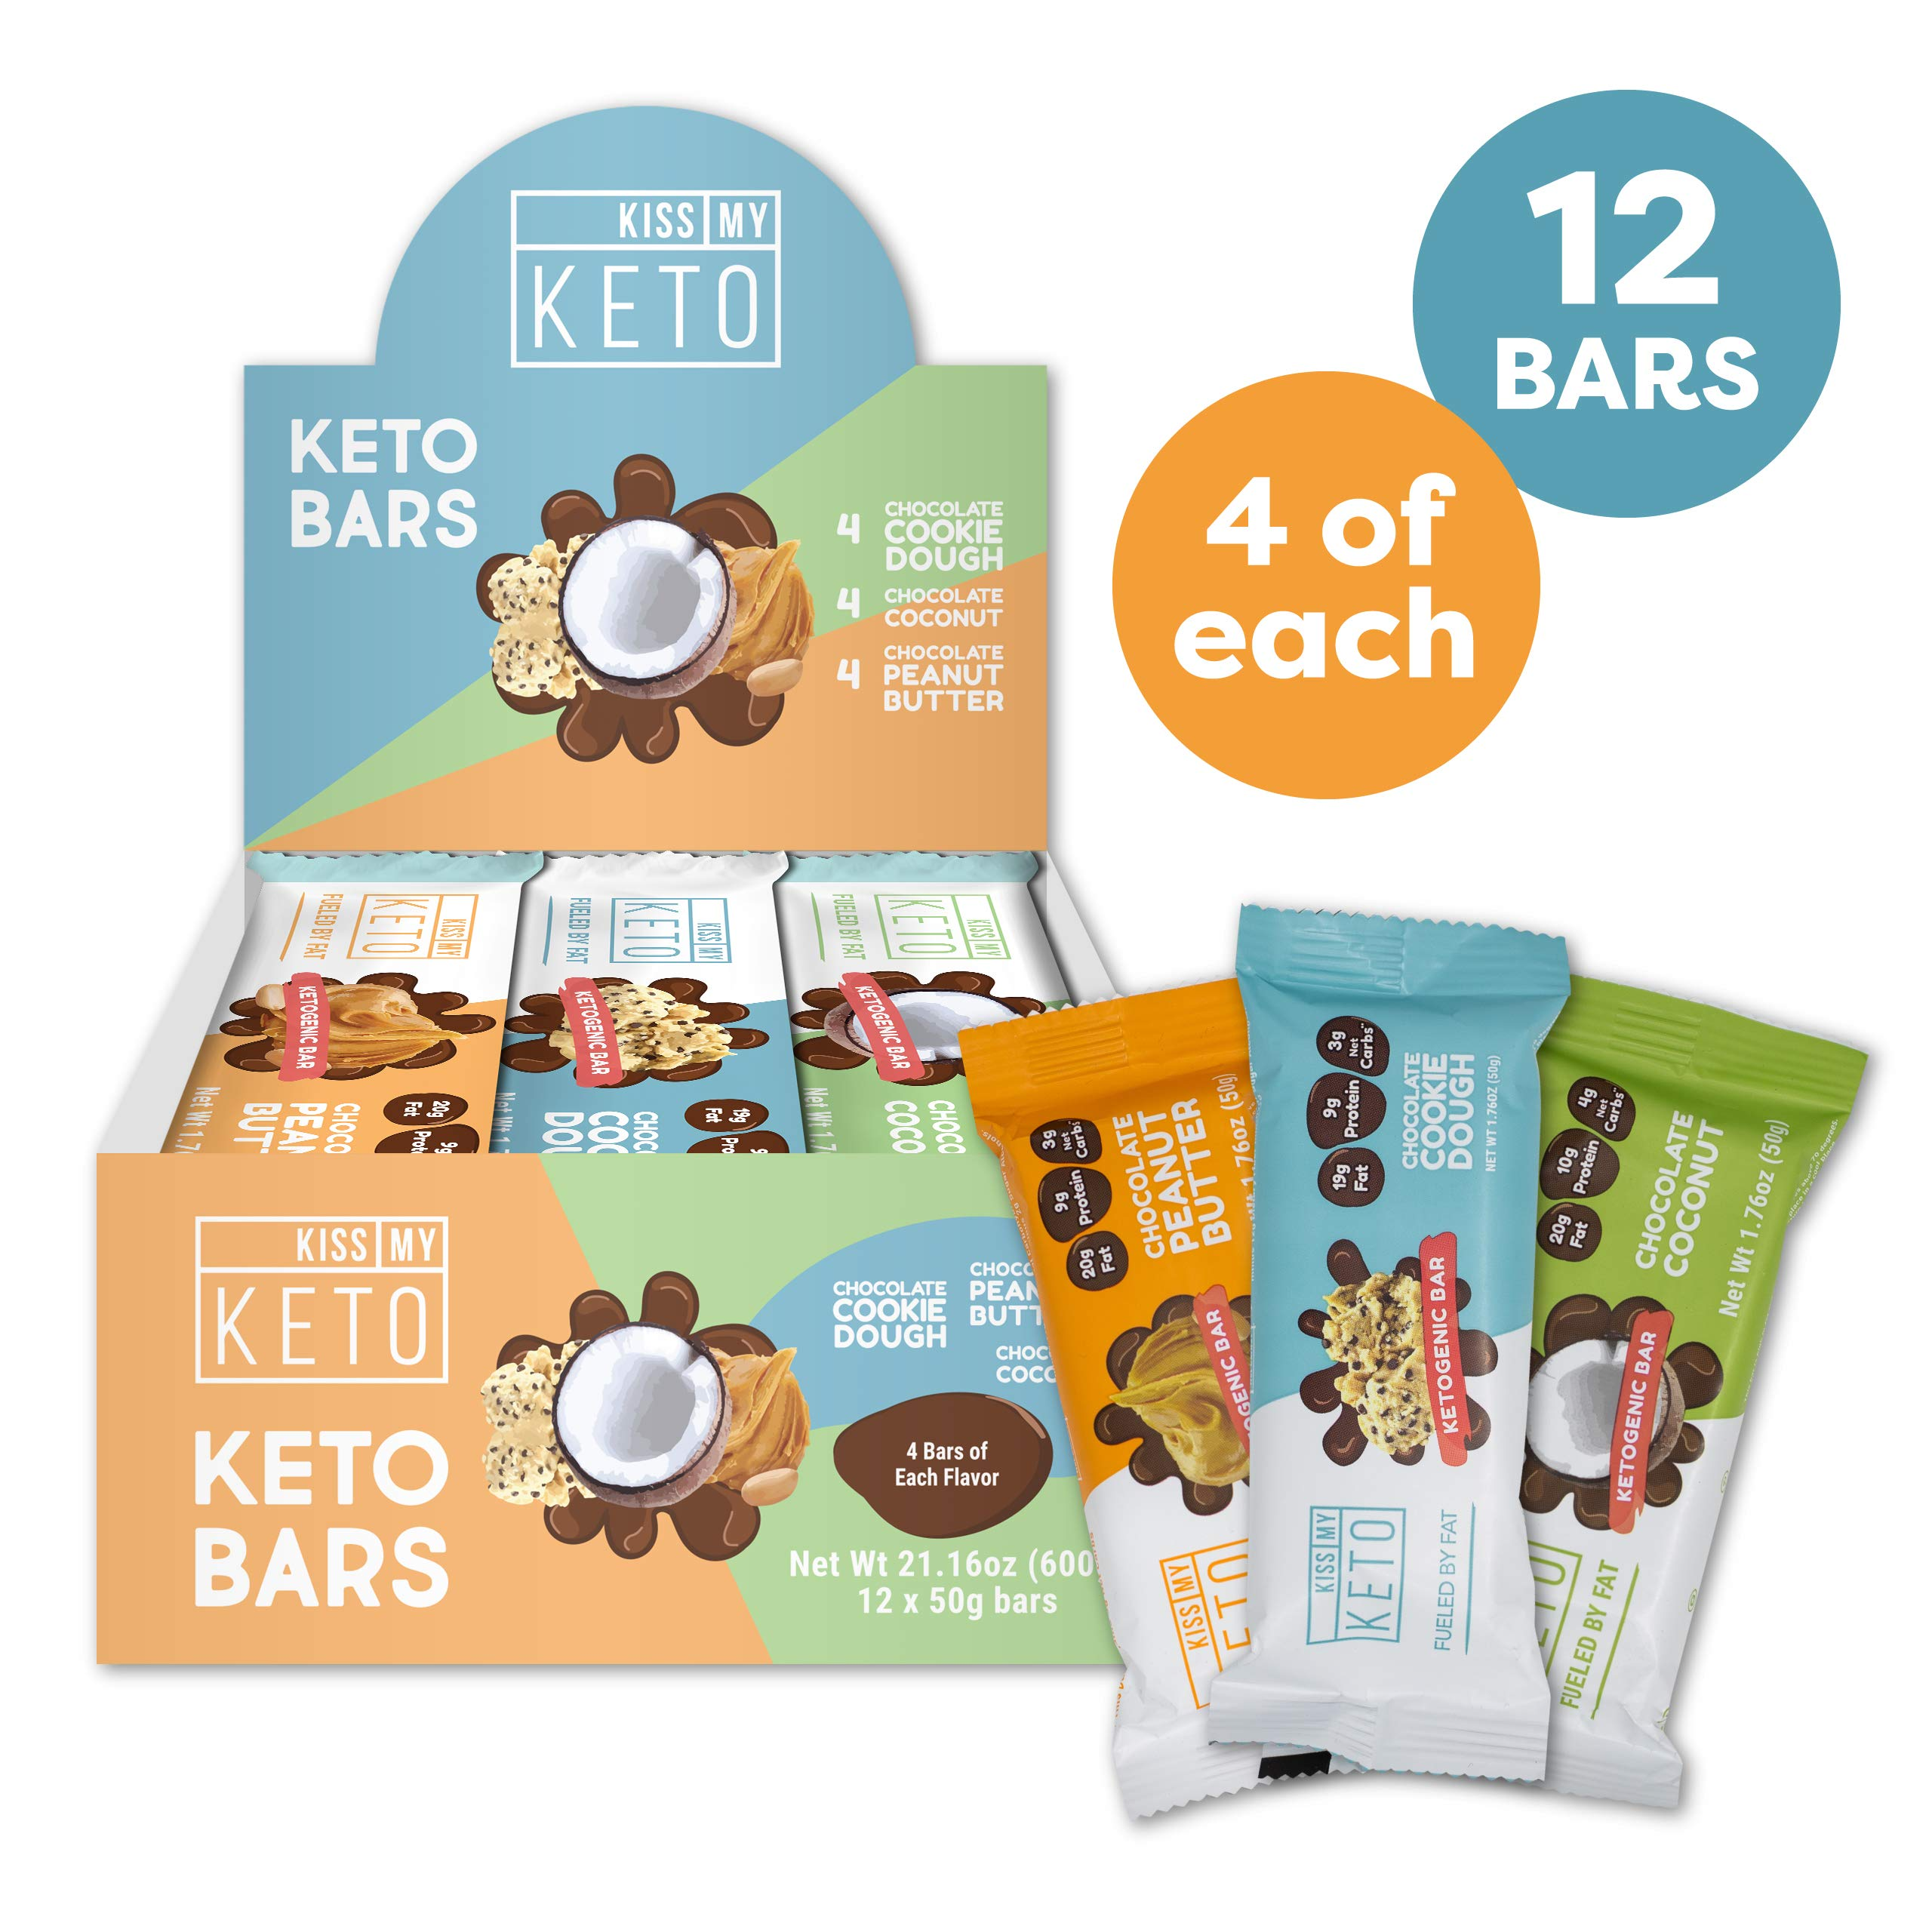 Kiss My Keto Snacks Keto Bars - Keto Chocolate Variety Pack (12) Nutritional Keto Food Bars, Paleo, Low Carb/Glycemic Keto Friendly Foods, Natural On-The-Go Snacks, Quality Fat Bars 3g Net Carbs by Kiss My Keto (Image #1)